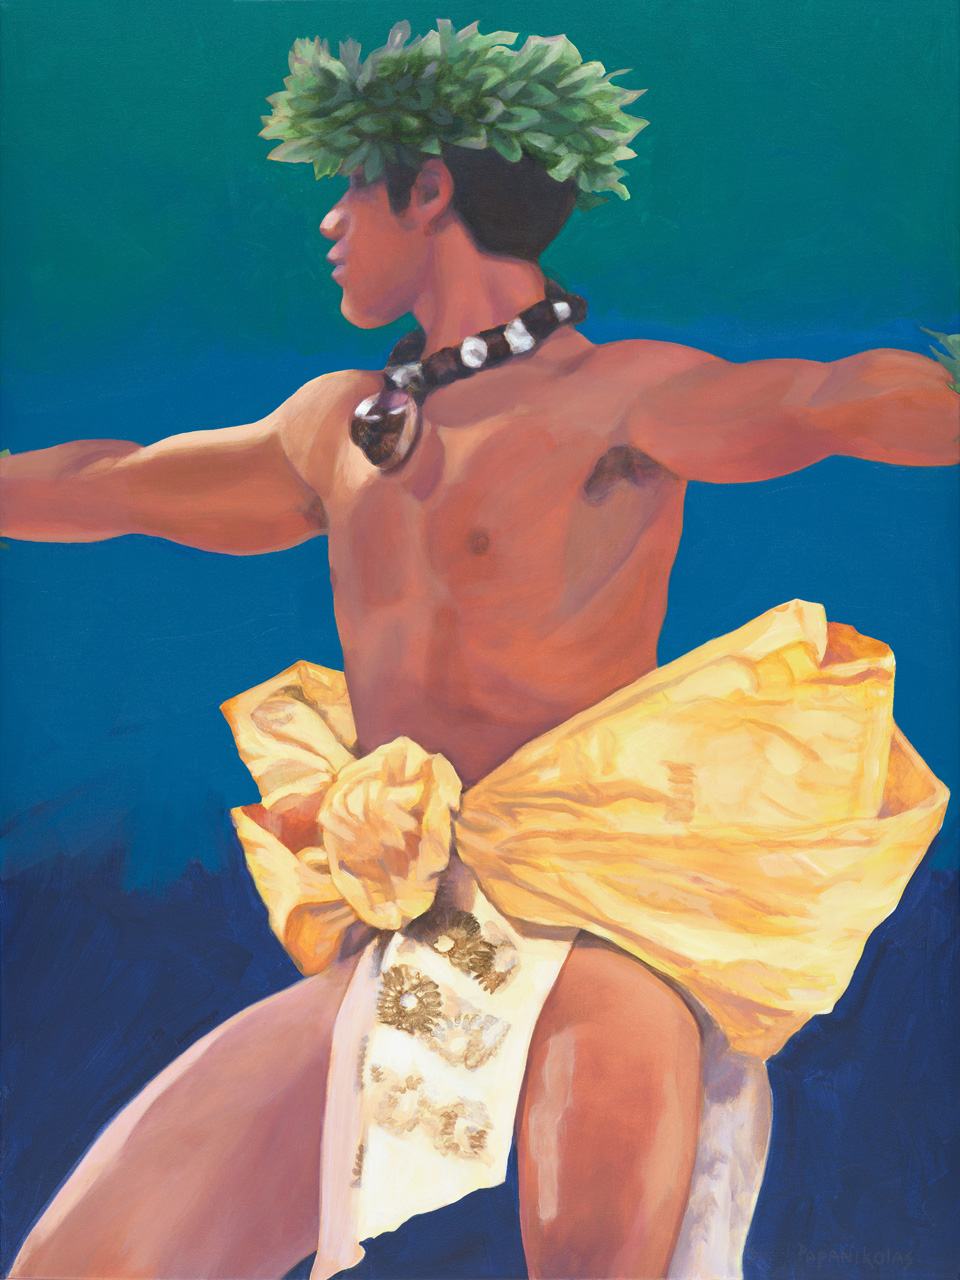 A male hula dancer in action with his arms spread open, wearing a yellow and while malo